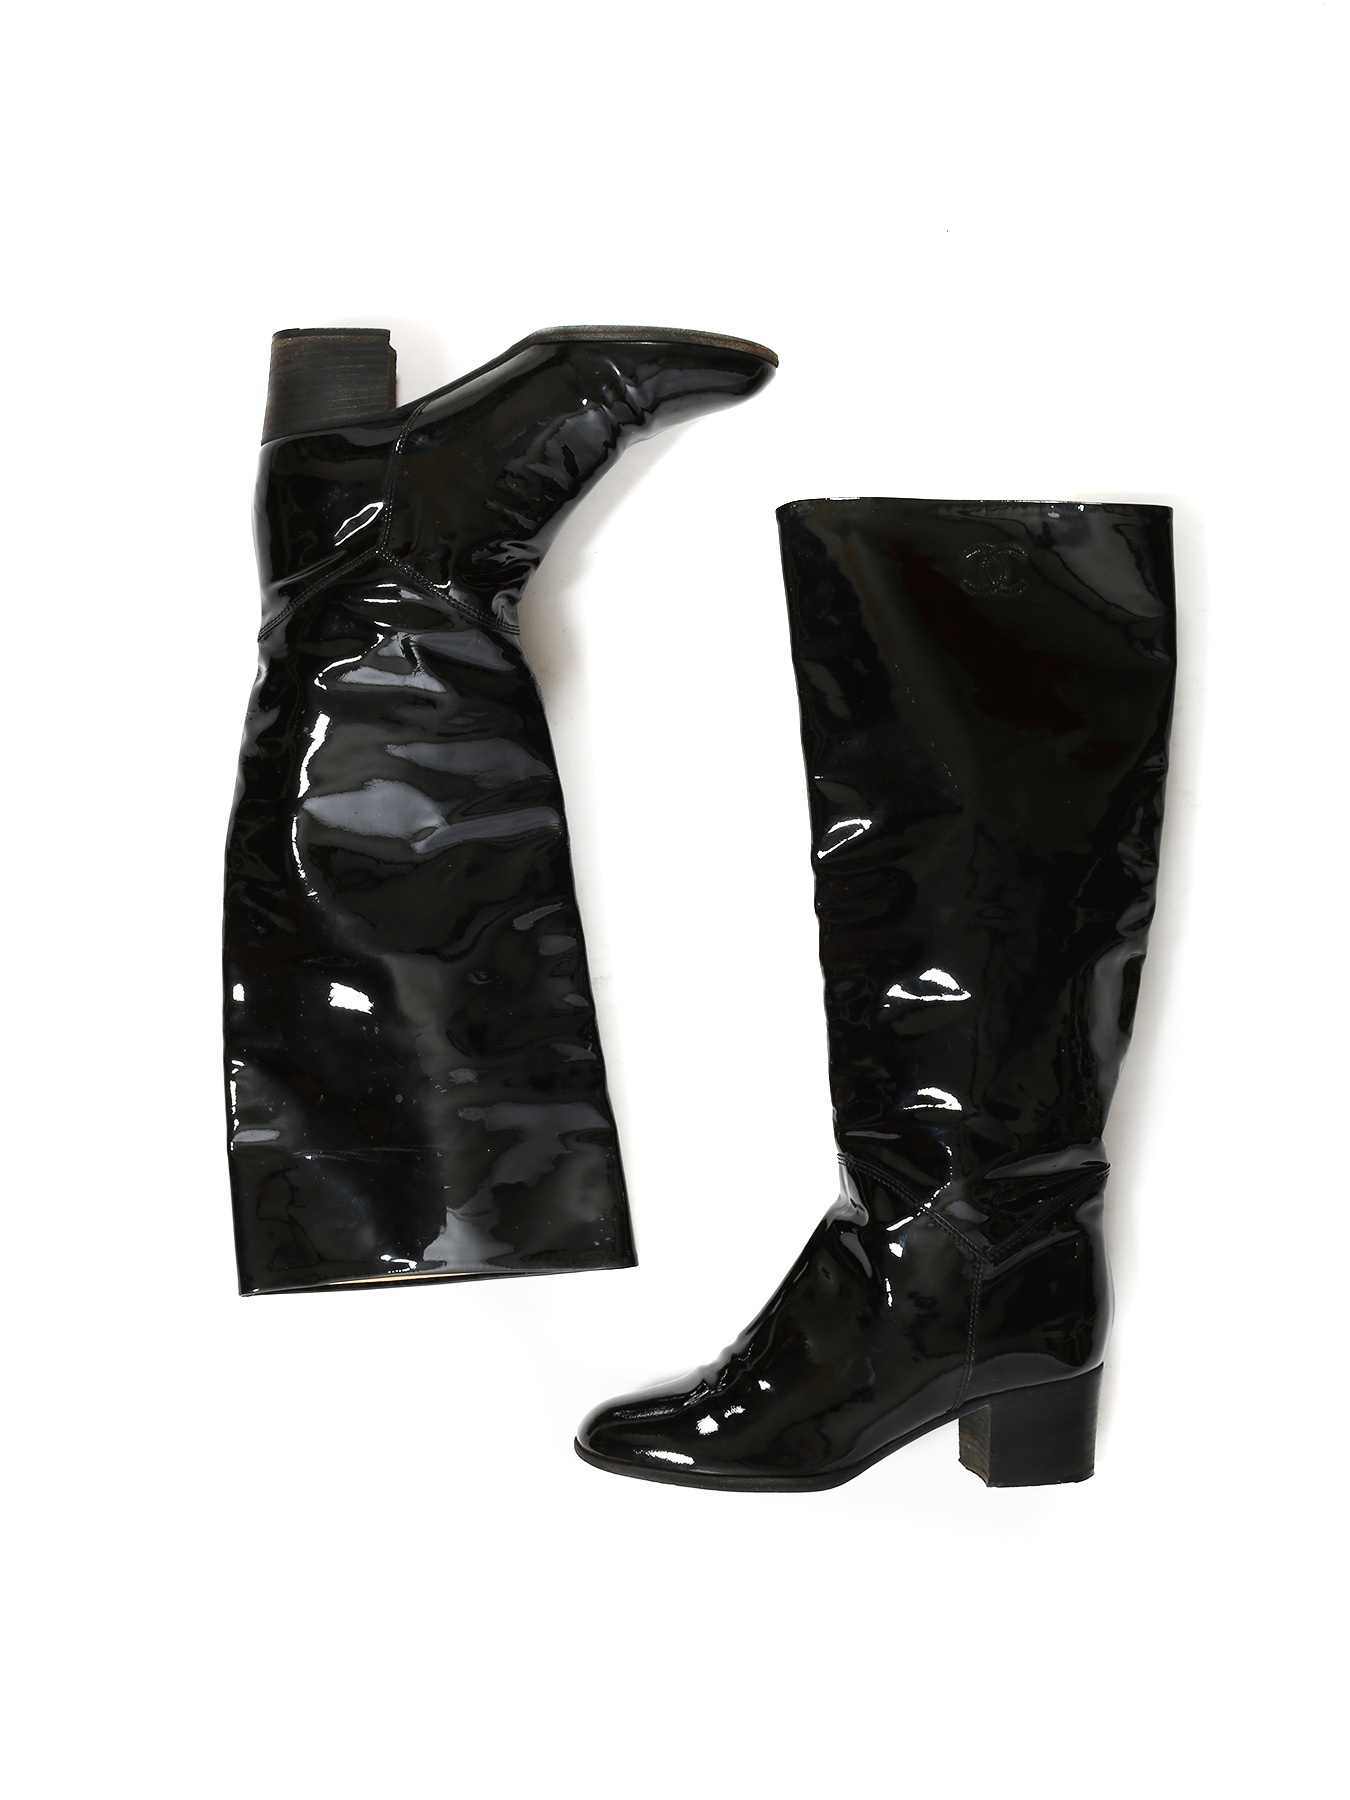 ba8c67e50bb ... Black patent leather knee high boots Retail price €1300 Size 36.5 ...